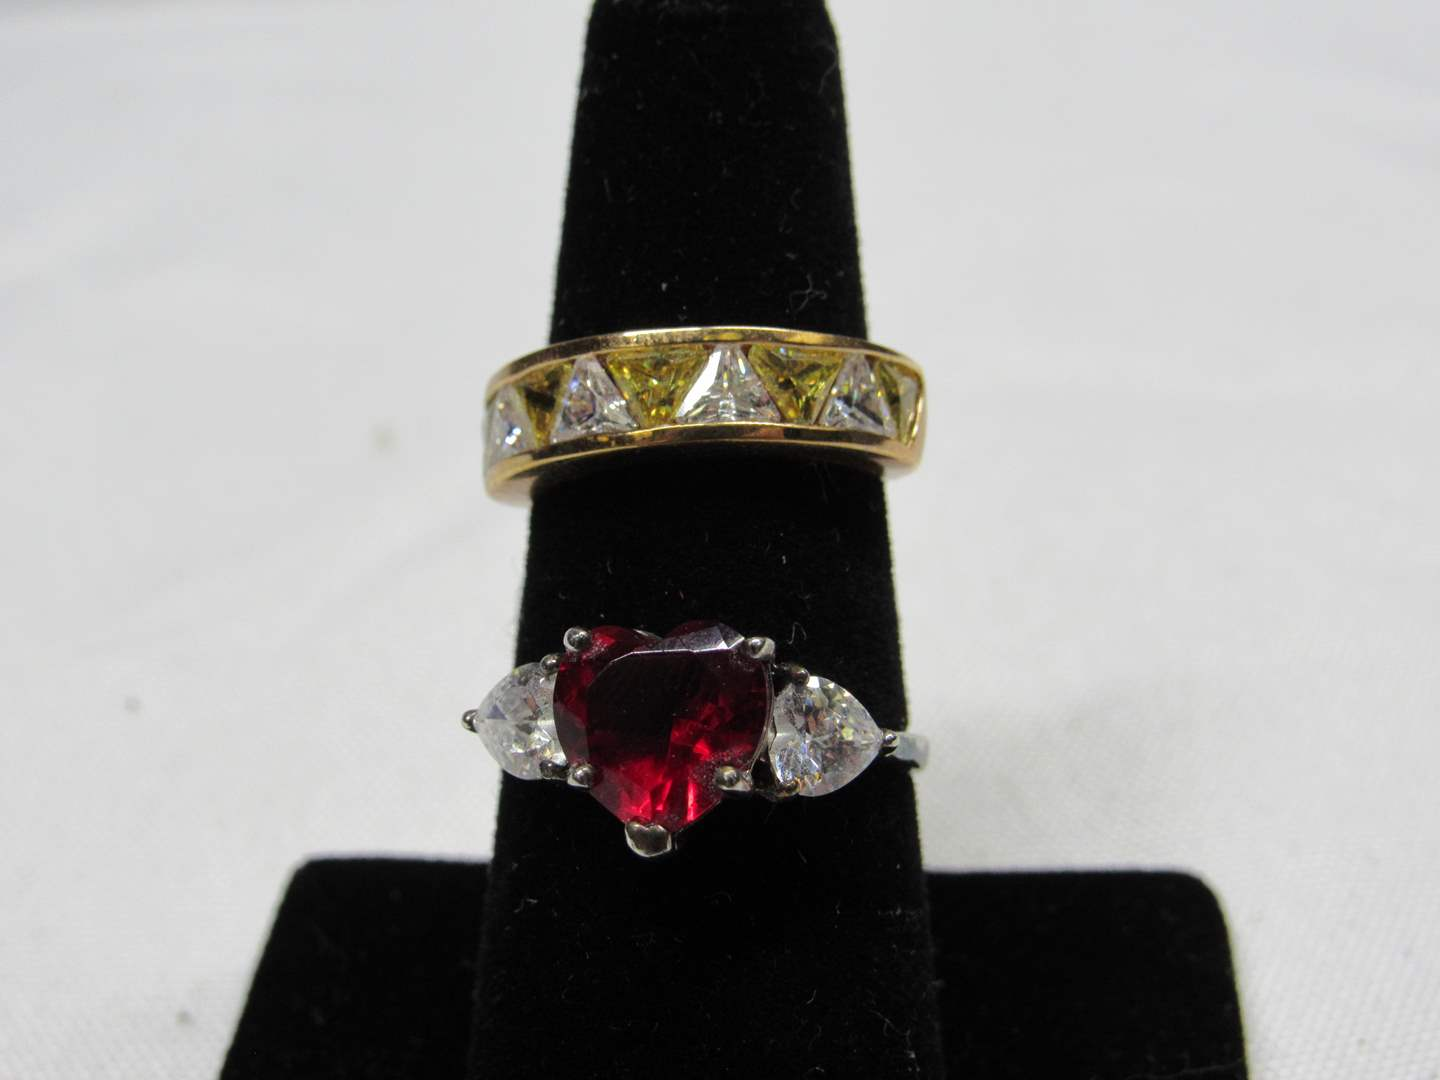 Lot # 235 2 sterling silver rings (one gold overlay) size 5 & 8 (main image)